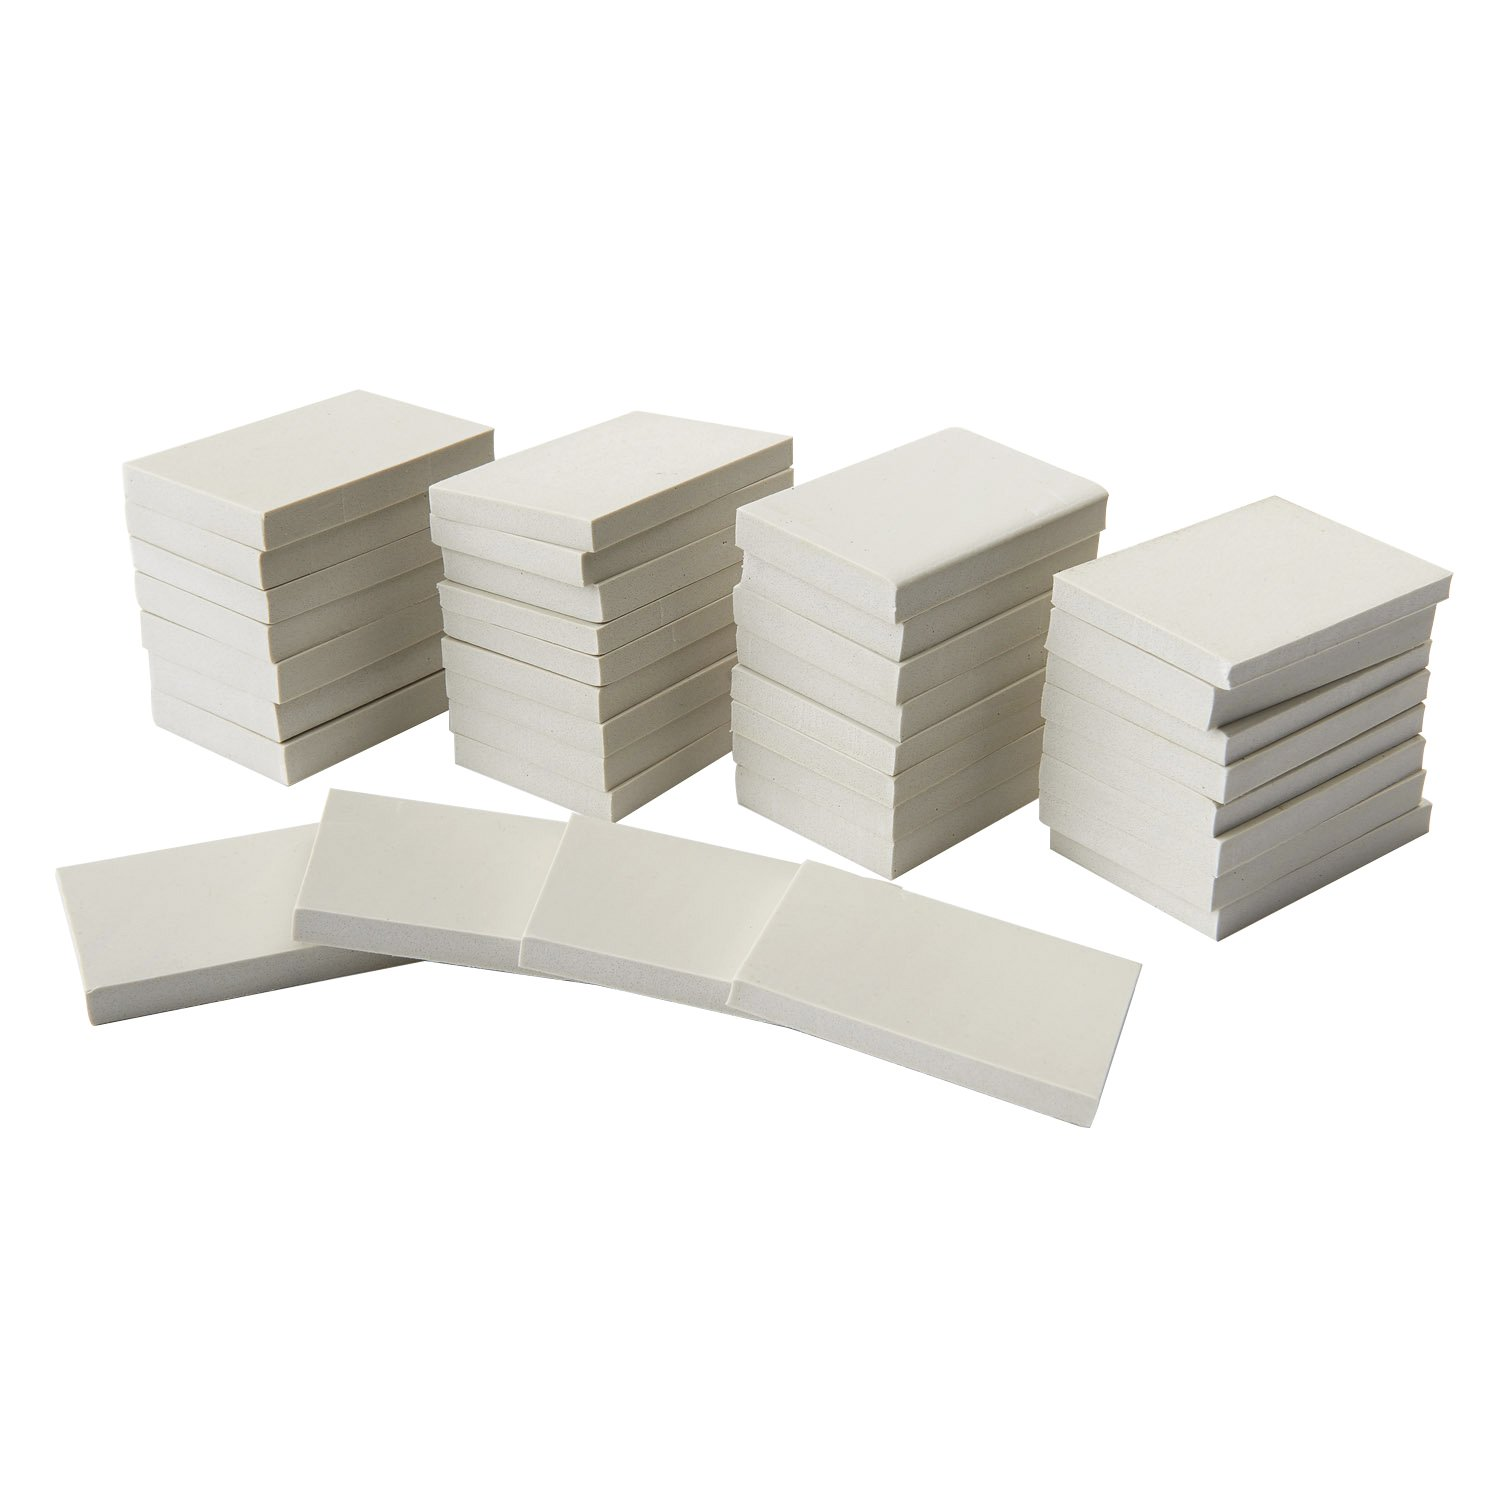 "Nasco Safety-Kut Artist Carving Blanks Classroom Pack of 36 - 2"" x 3"" x 3/8"" Blanks"